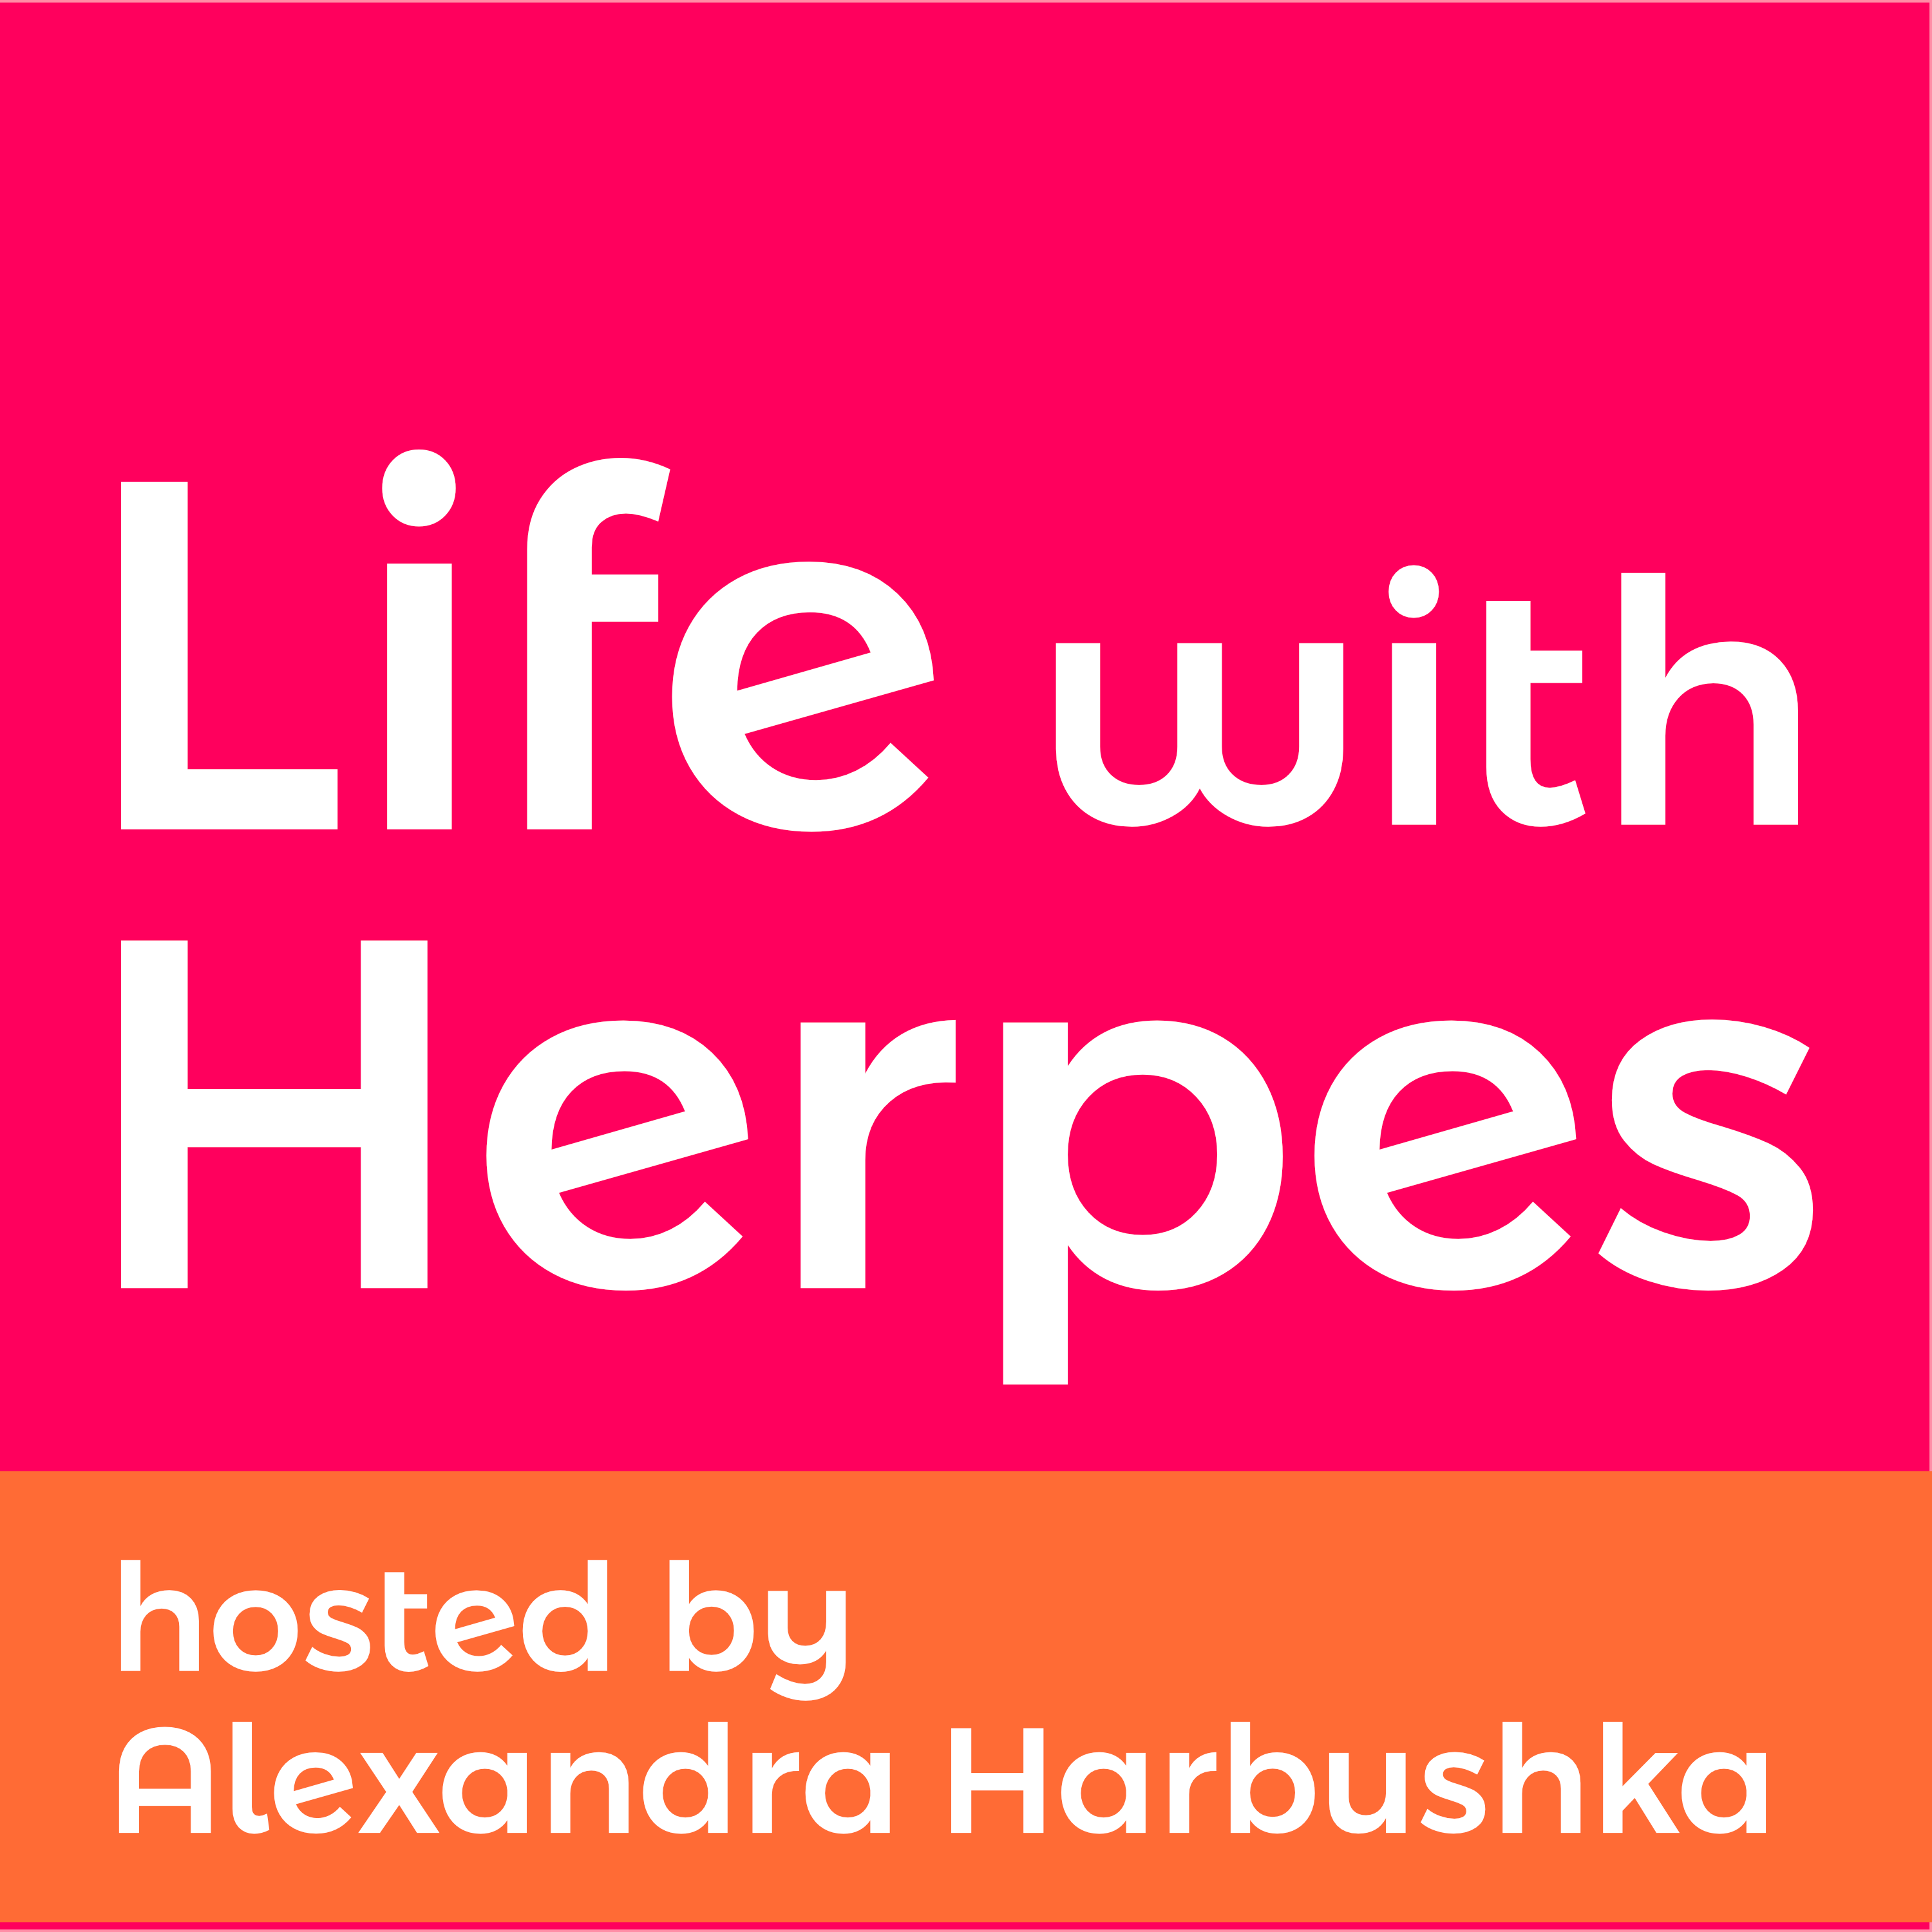 Herpes and safe sex